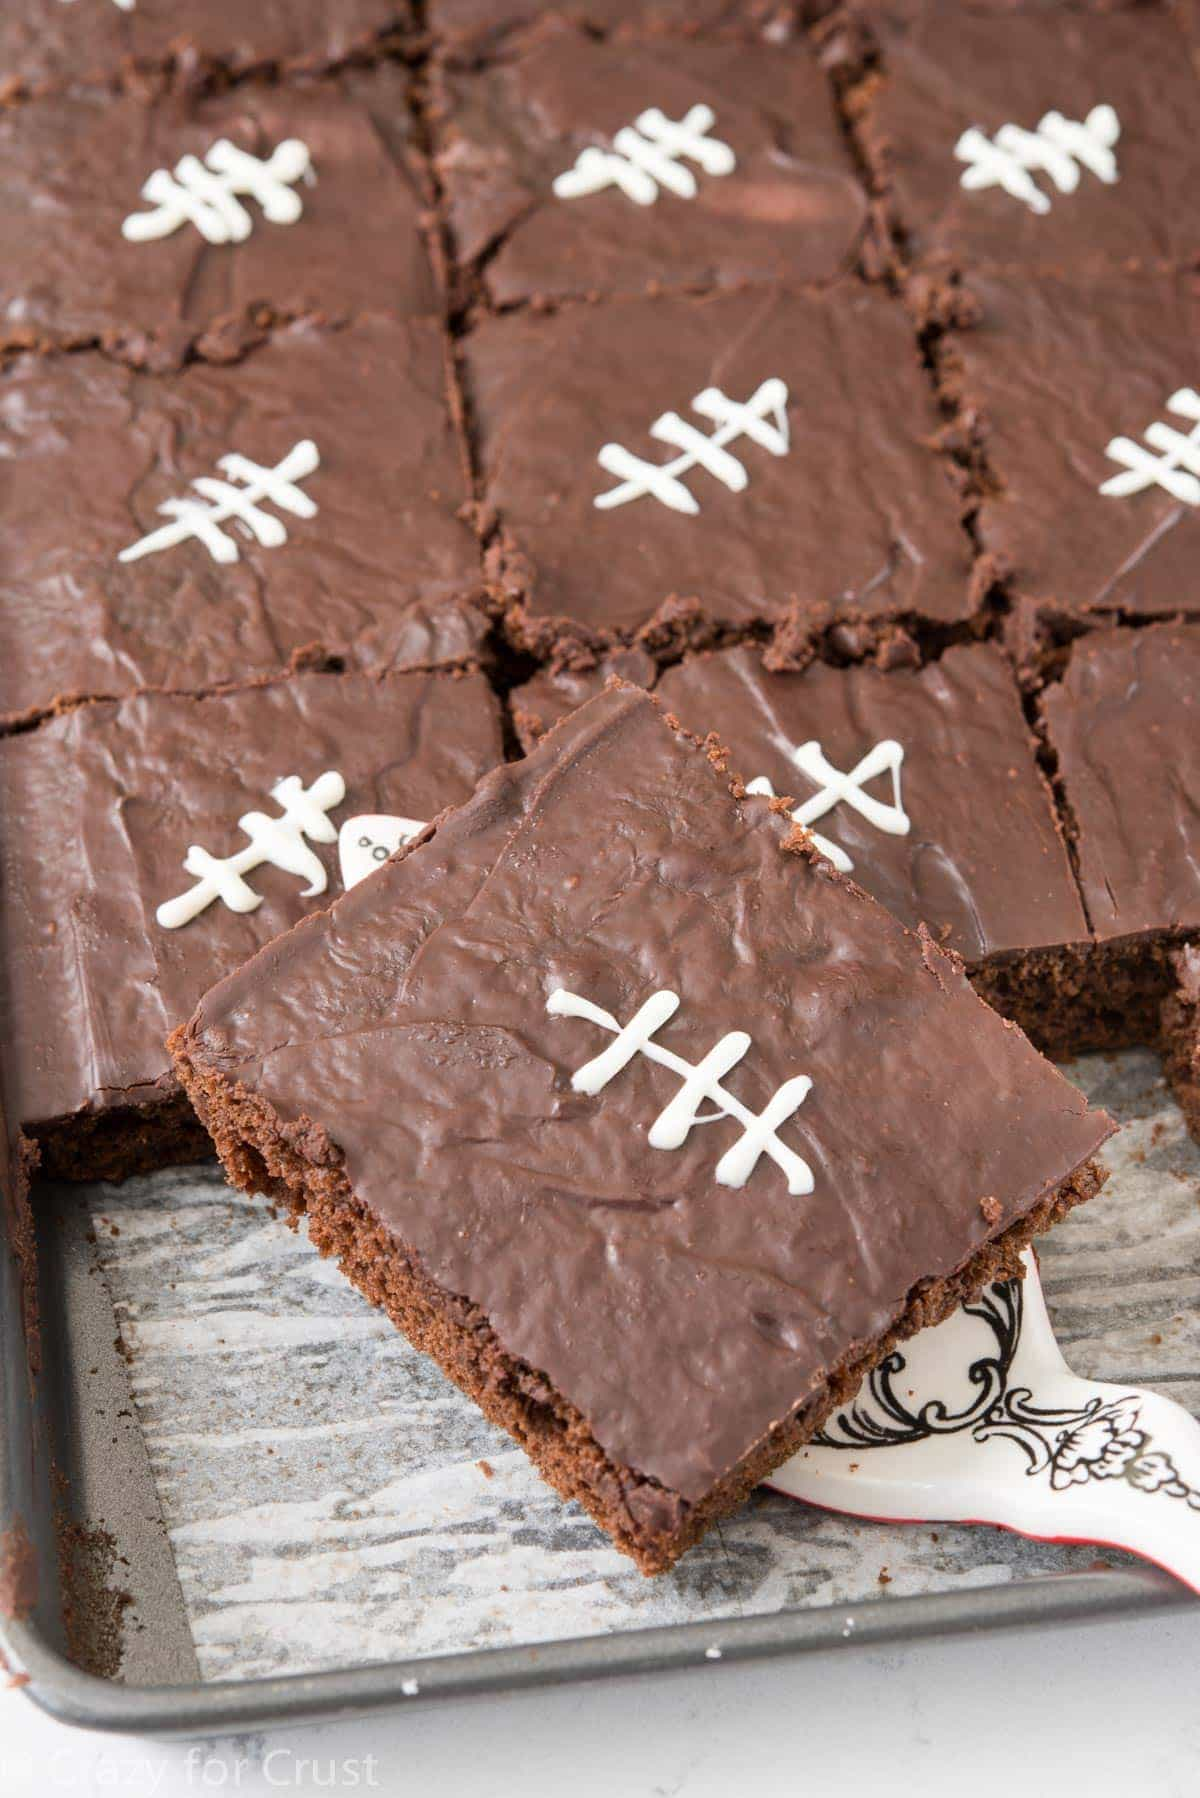 Better Chocolate Sheet Cake Recipe - turn an easy chocolate sheet cake into a football sheet cake!